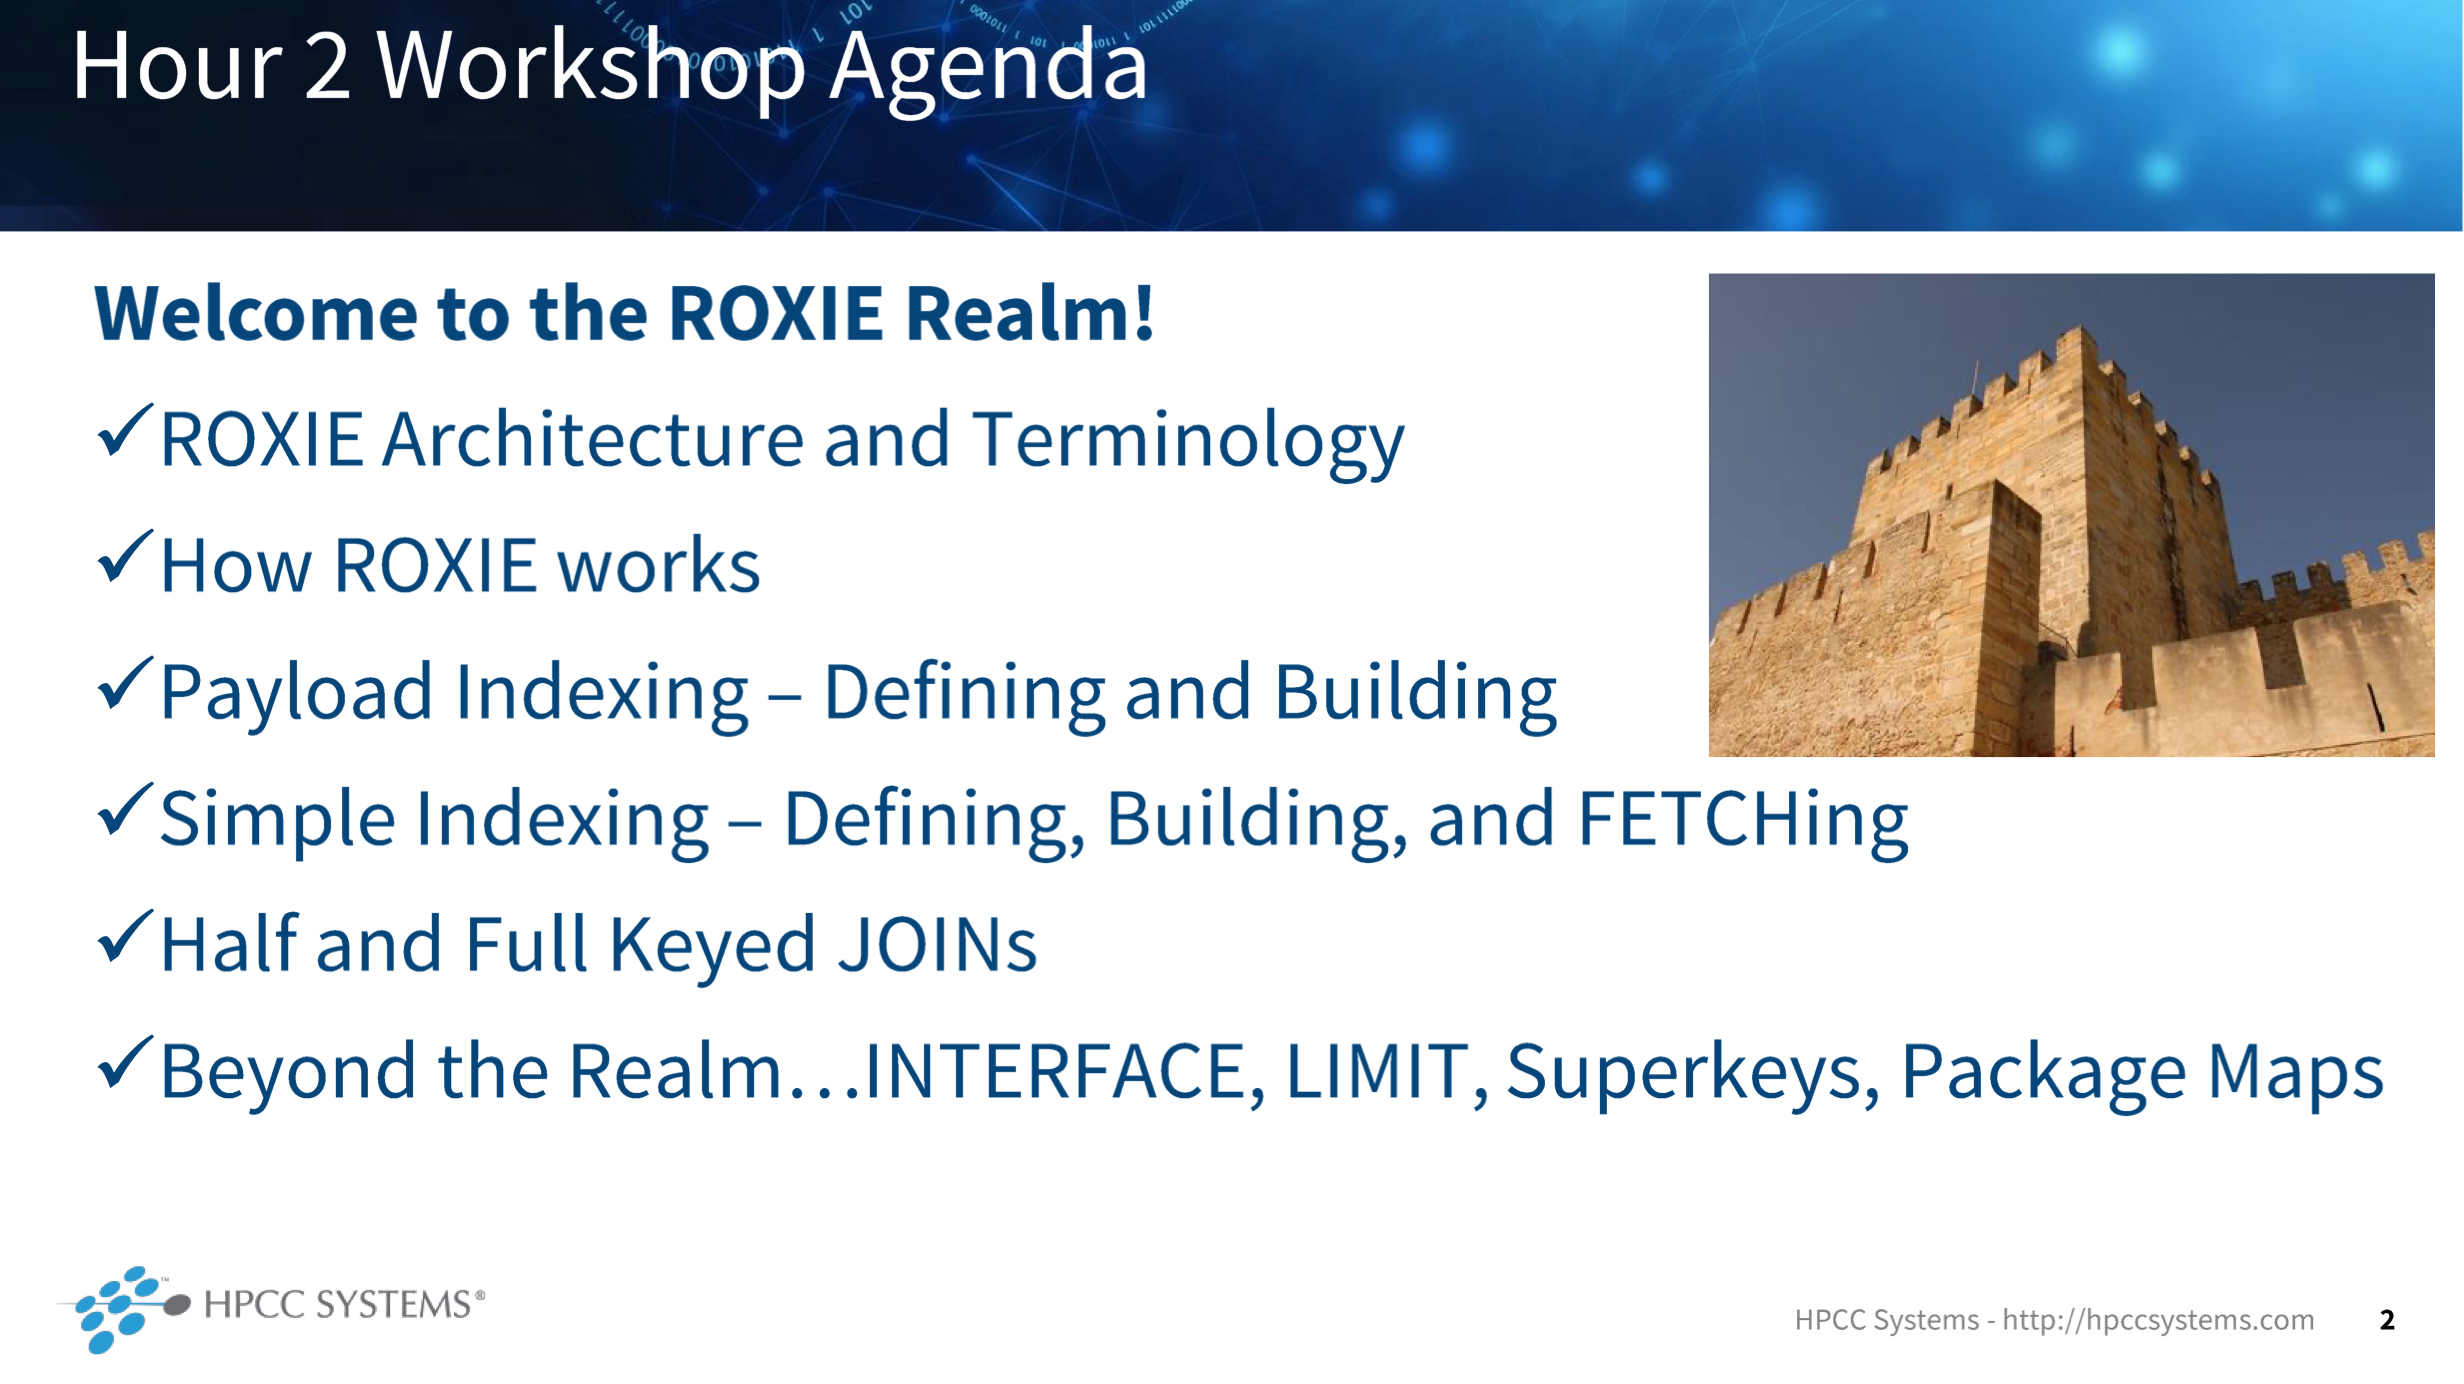 Image showing the course content for The ROXIE Realm